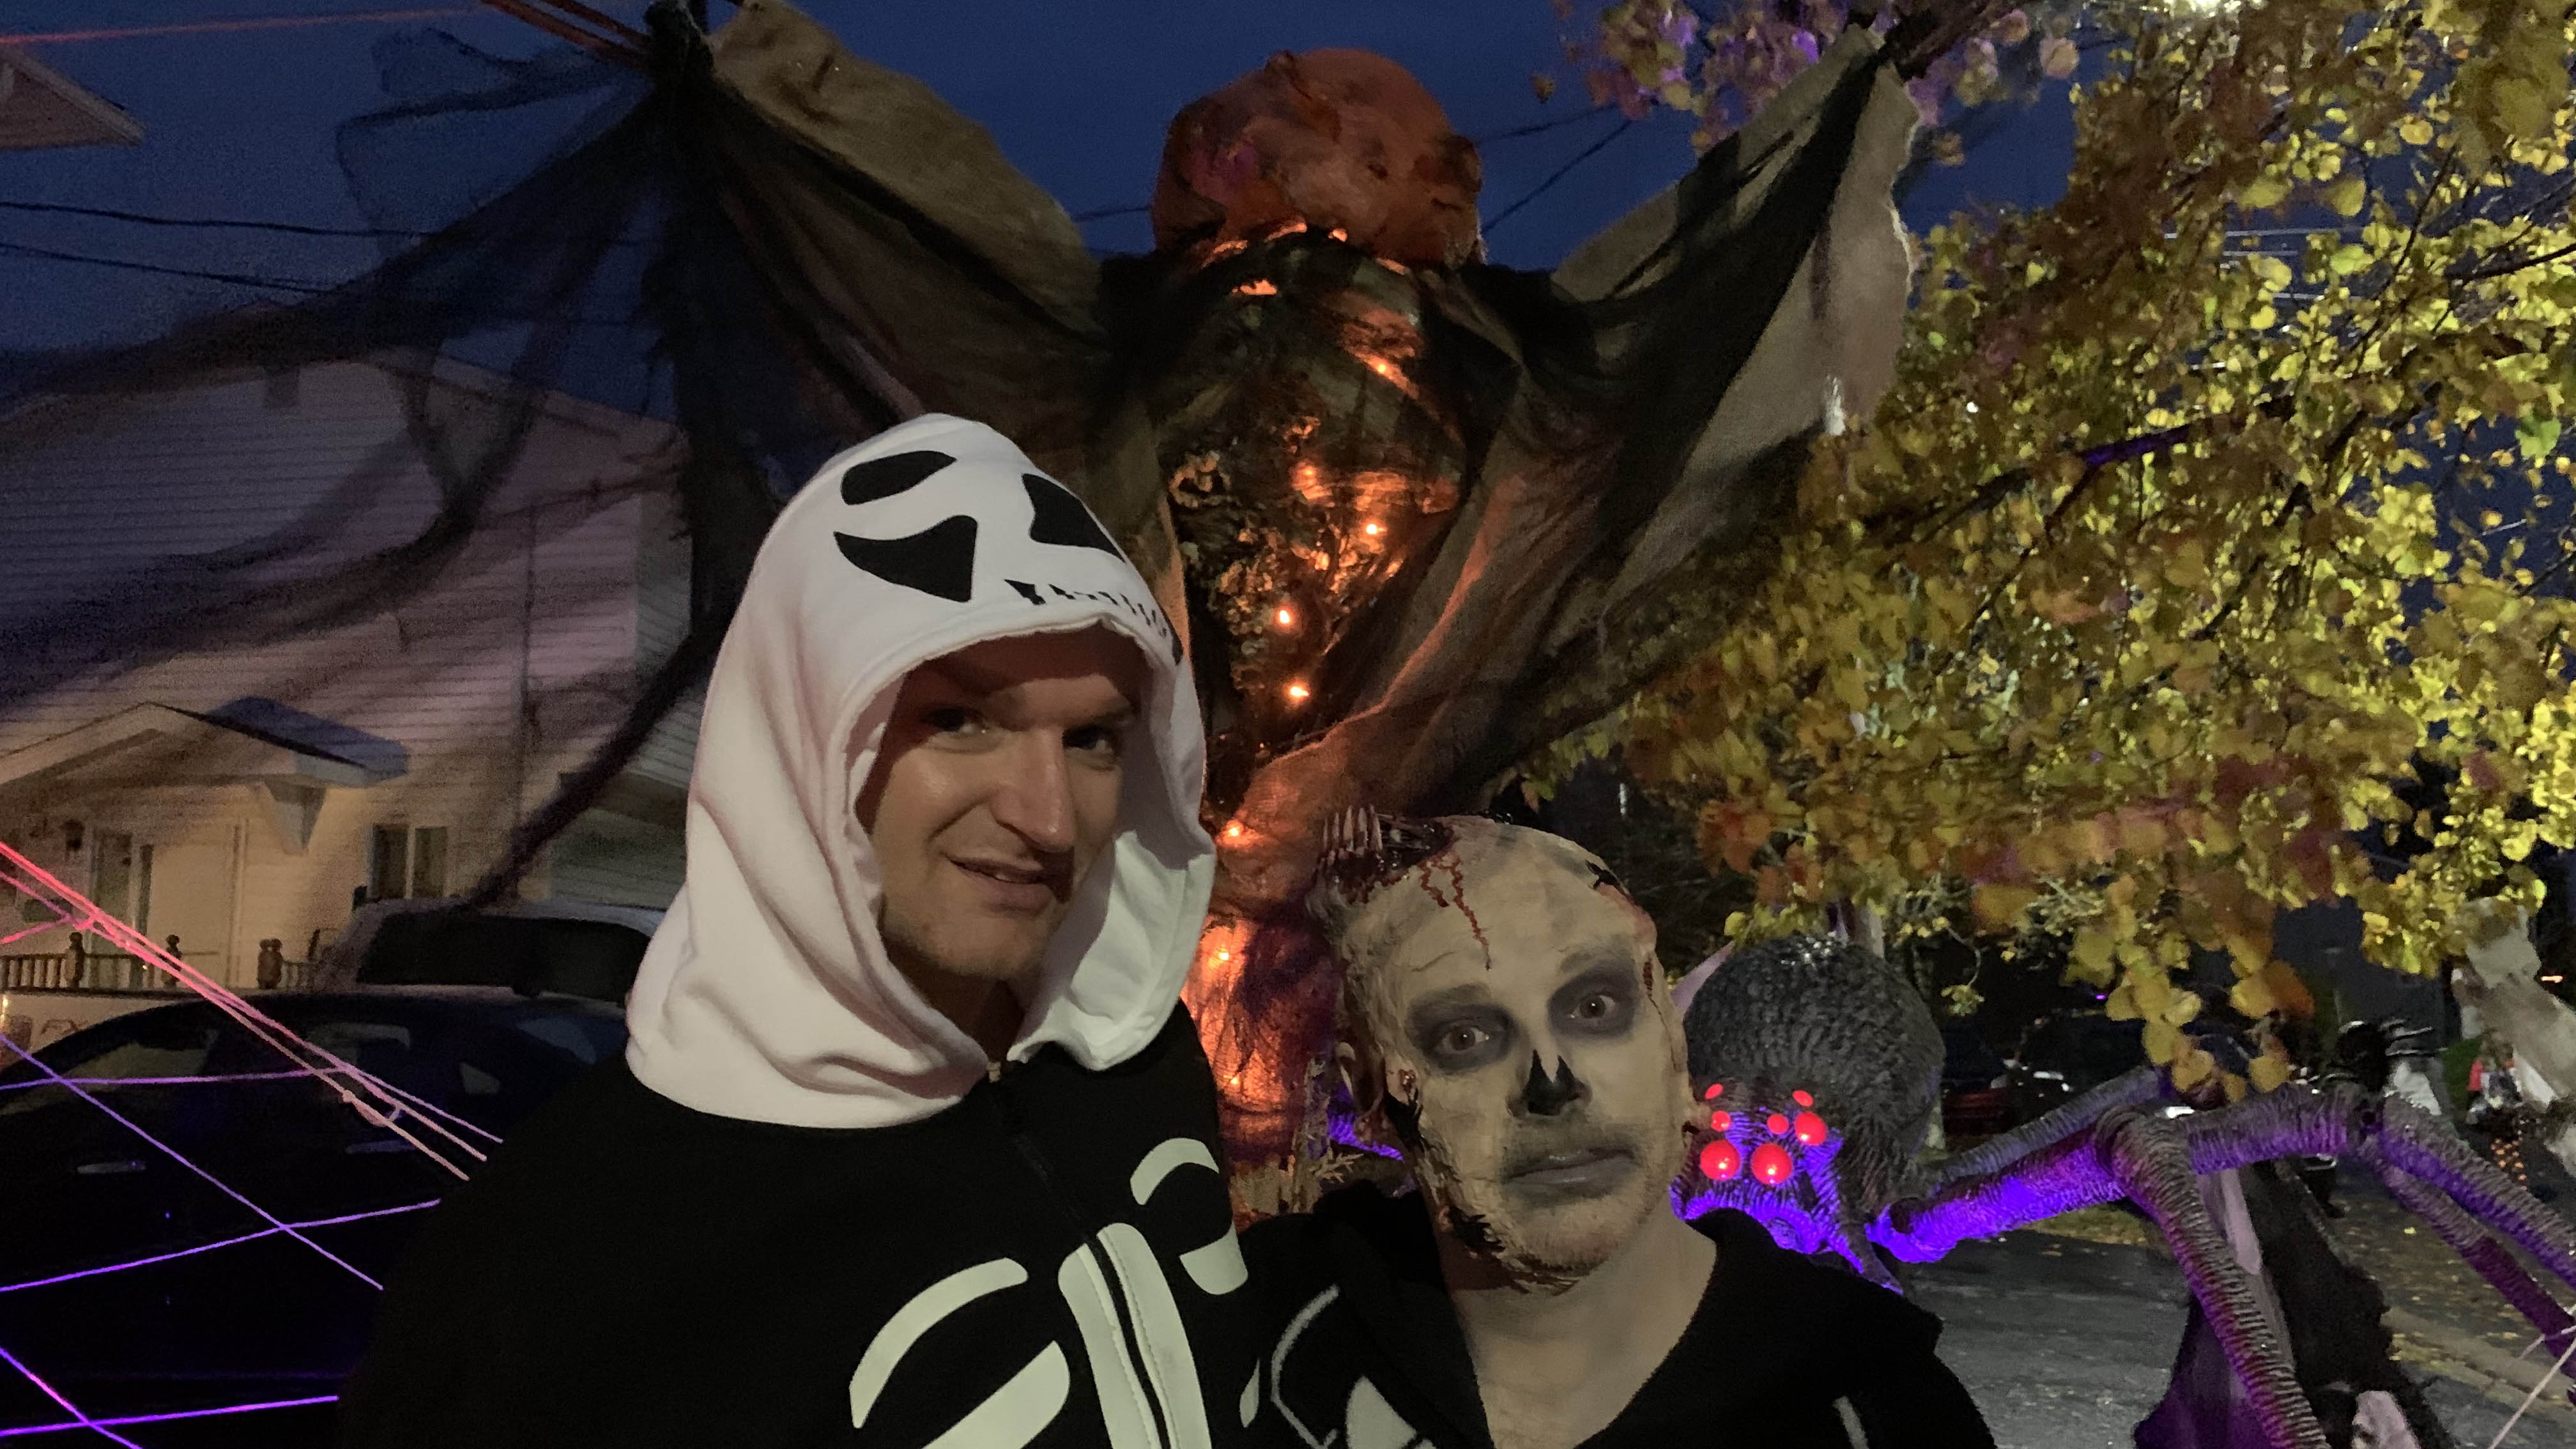 Steven MacLeod and Jacob Rafuse pose for a photo in front of their Halloween decorations.